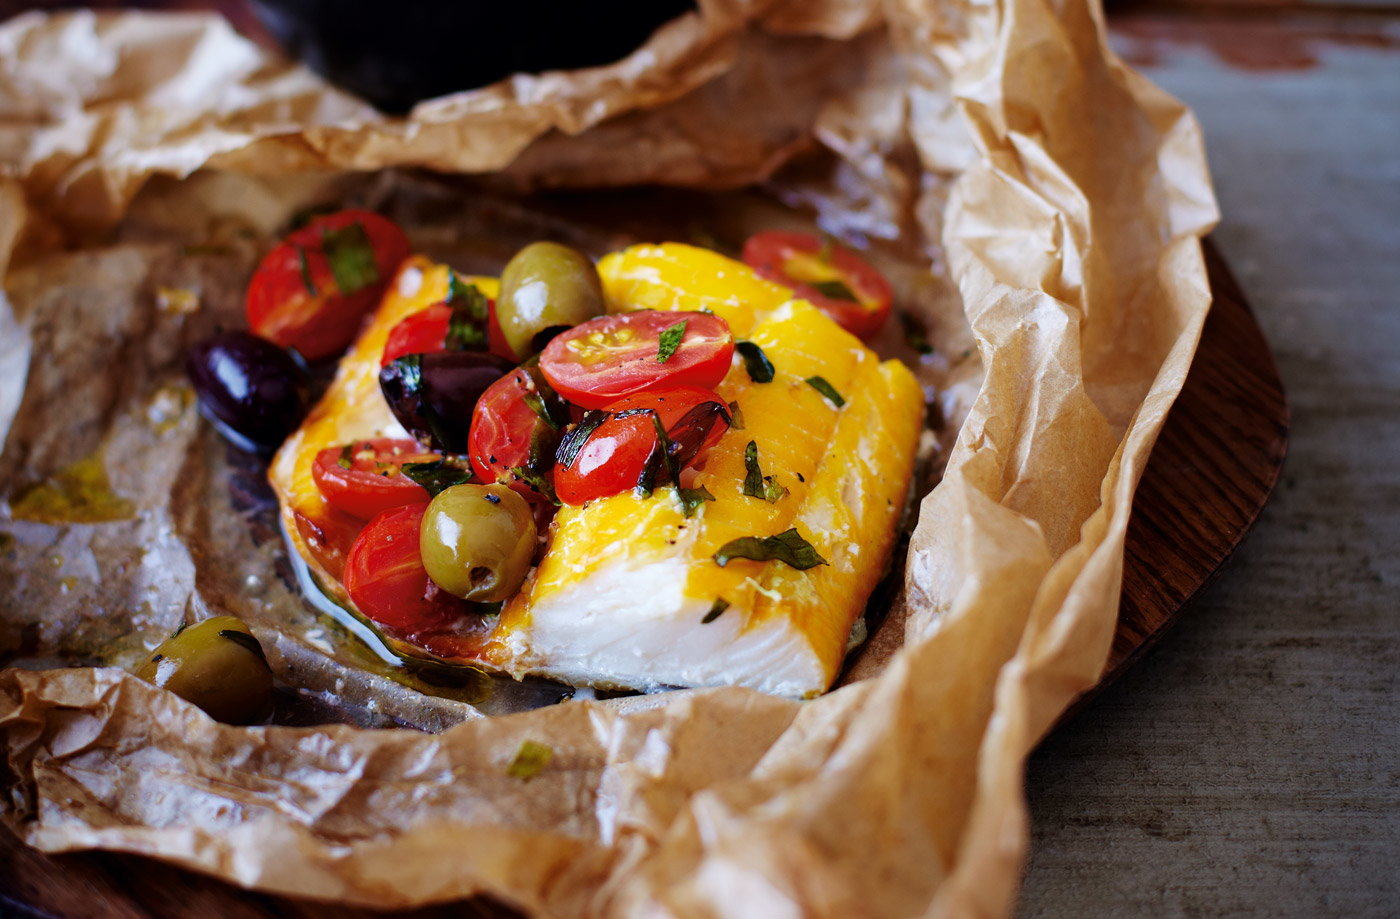 Tesco Finest smoked haddock parcels with cherry tomatoes and olives recipe